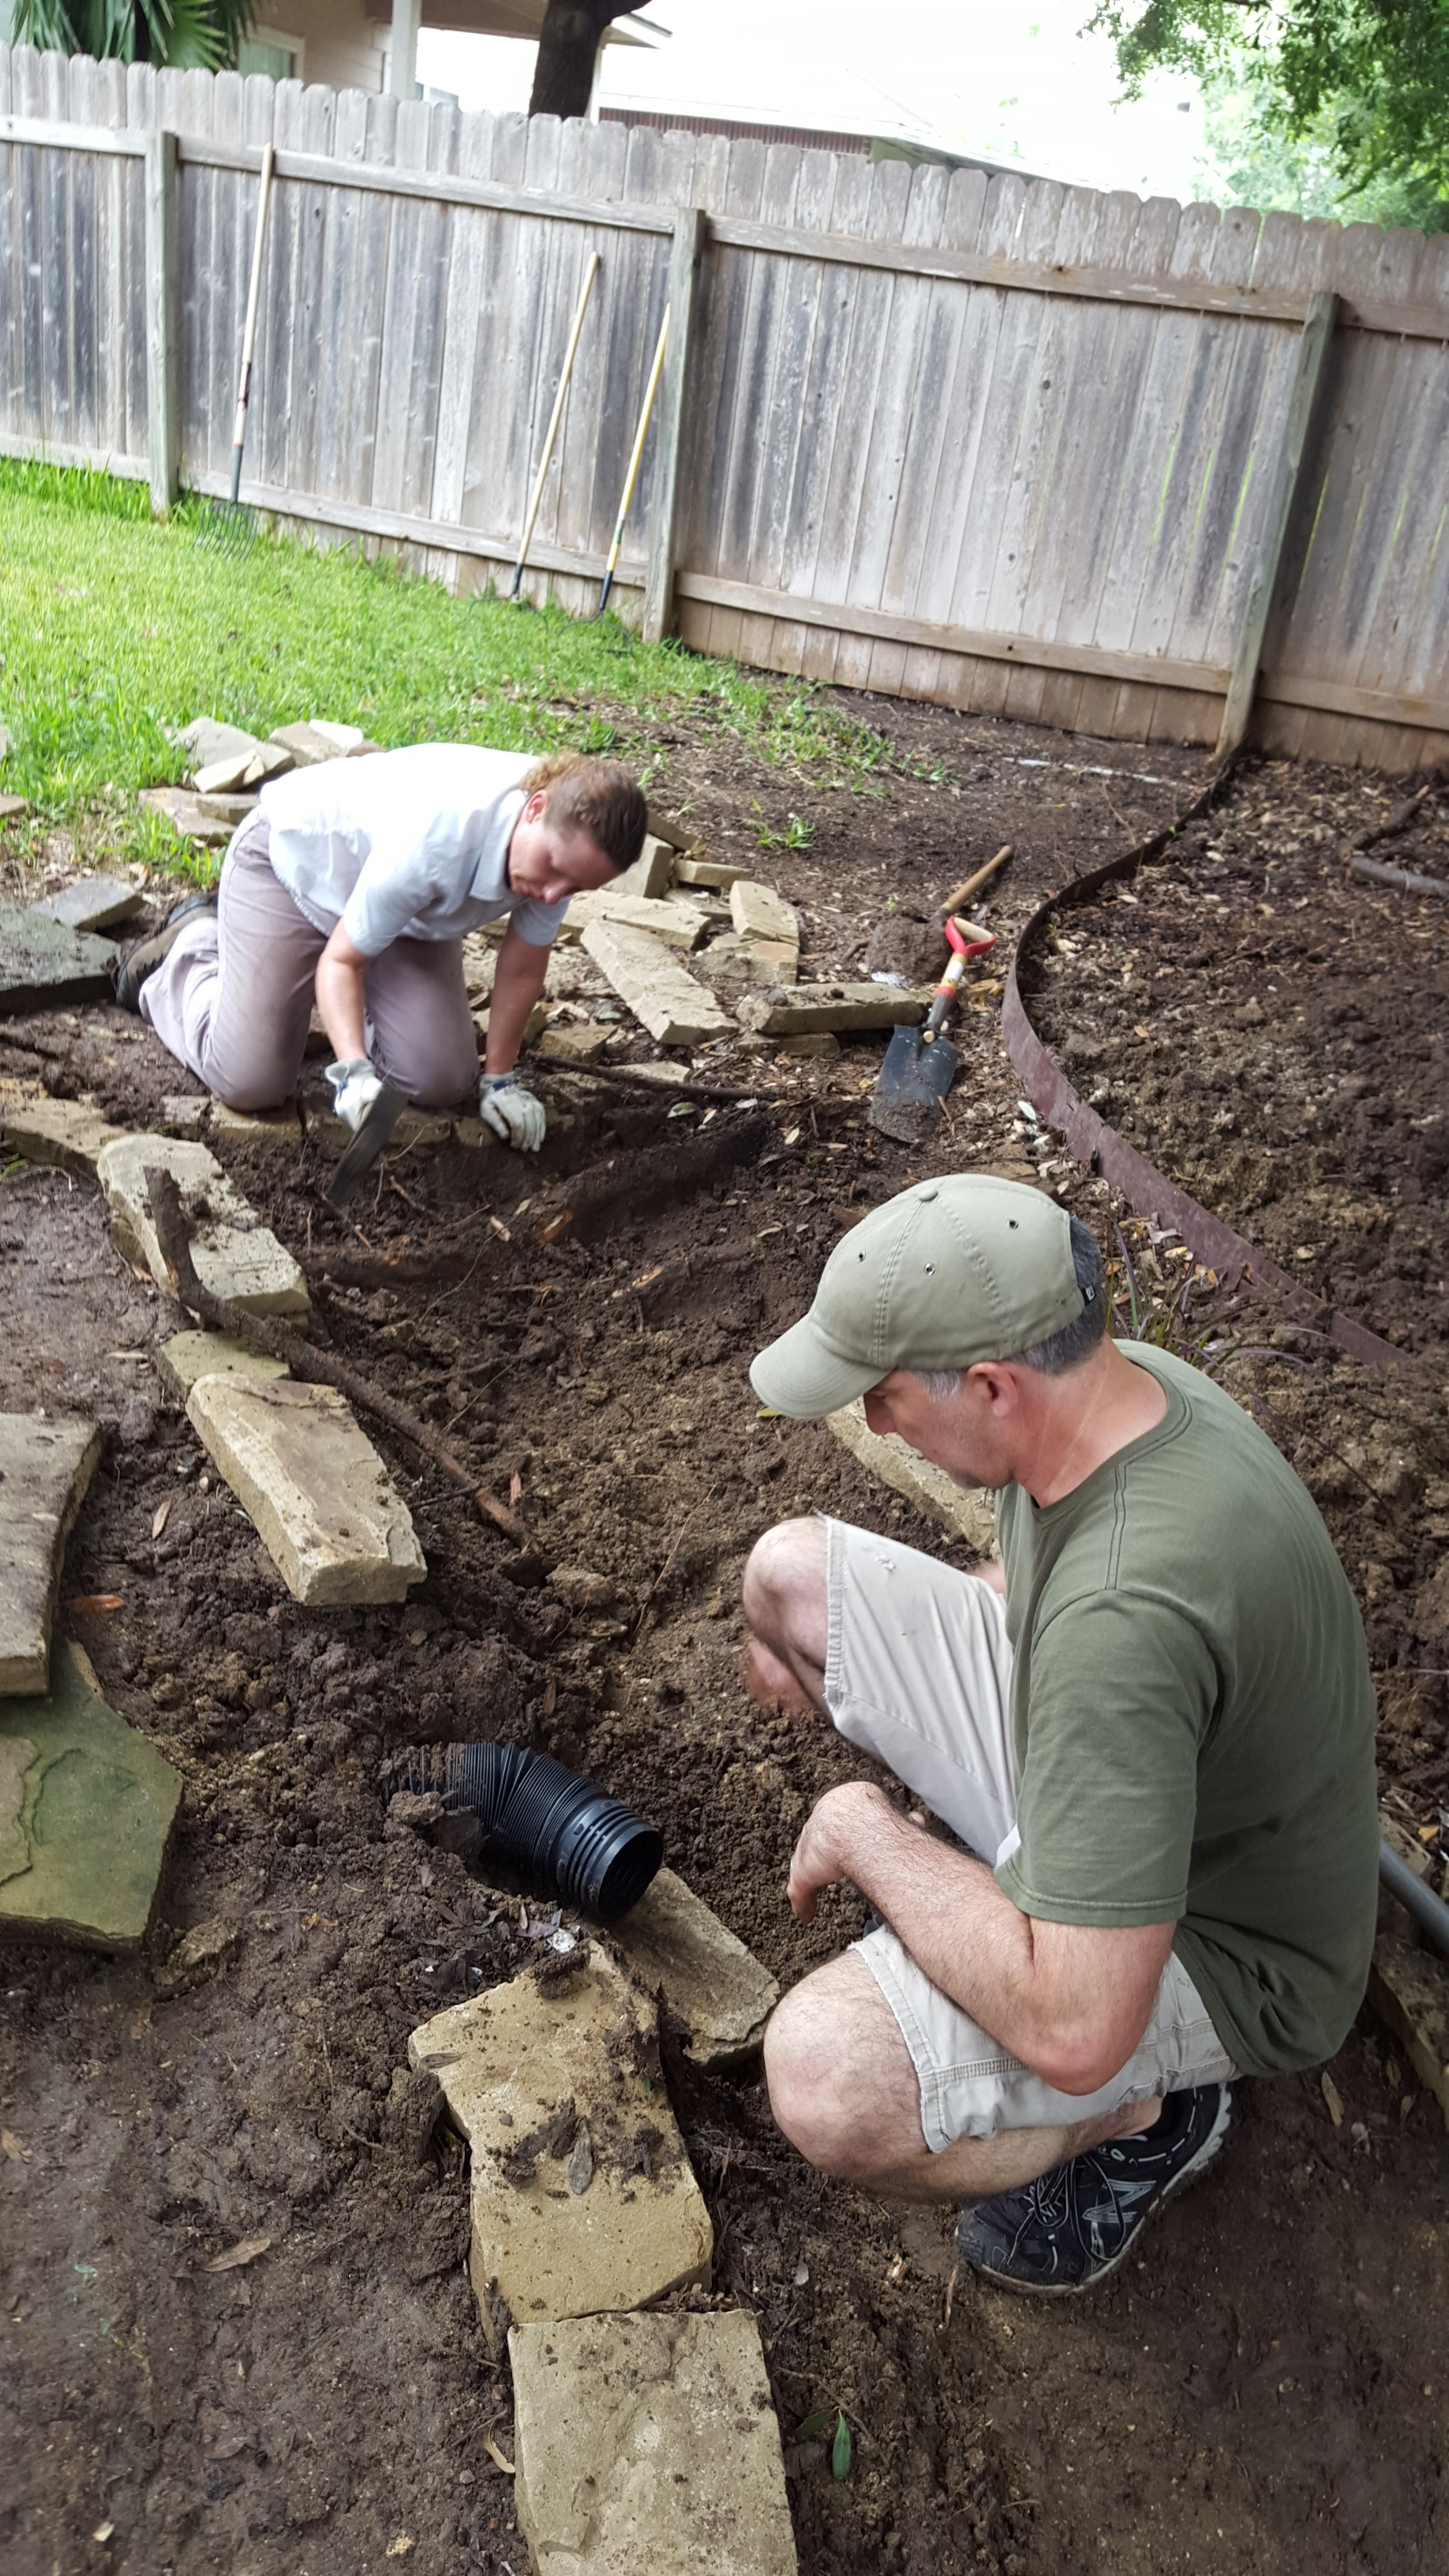 Man and woman planting in a garden